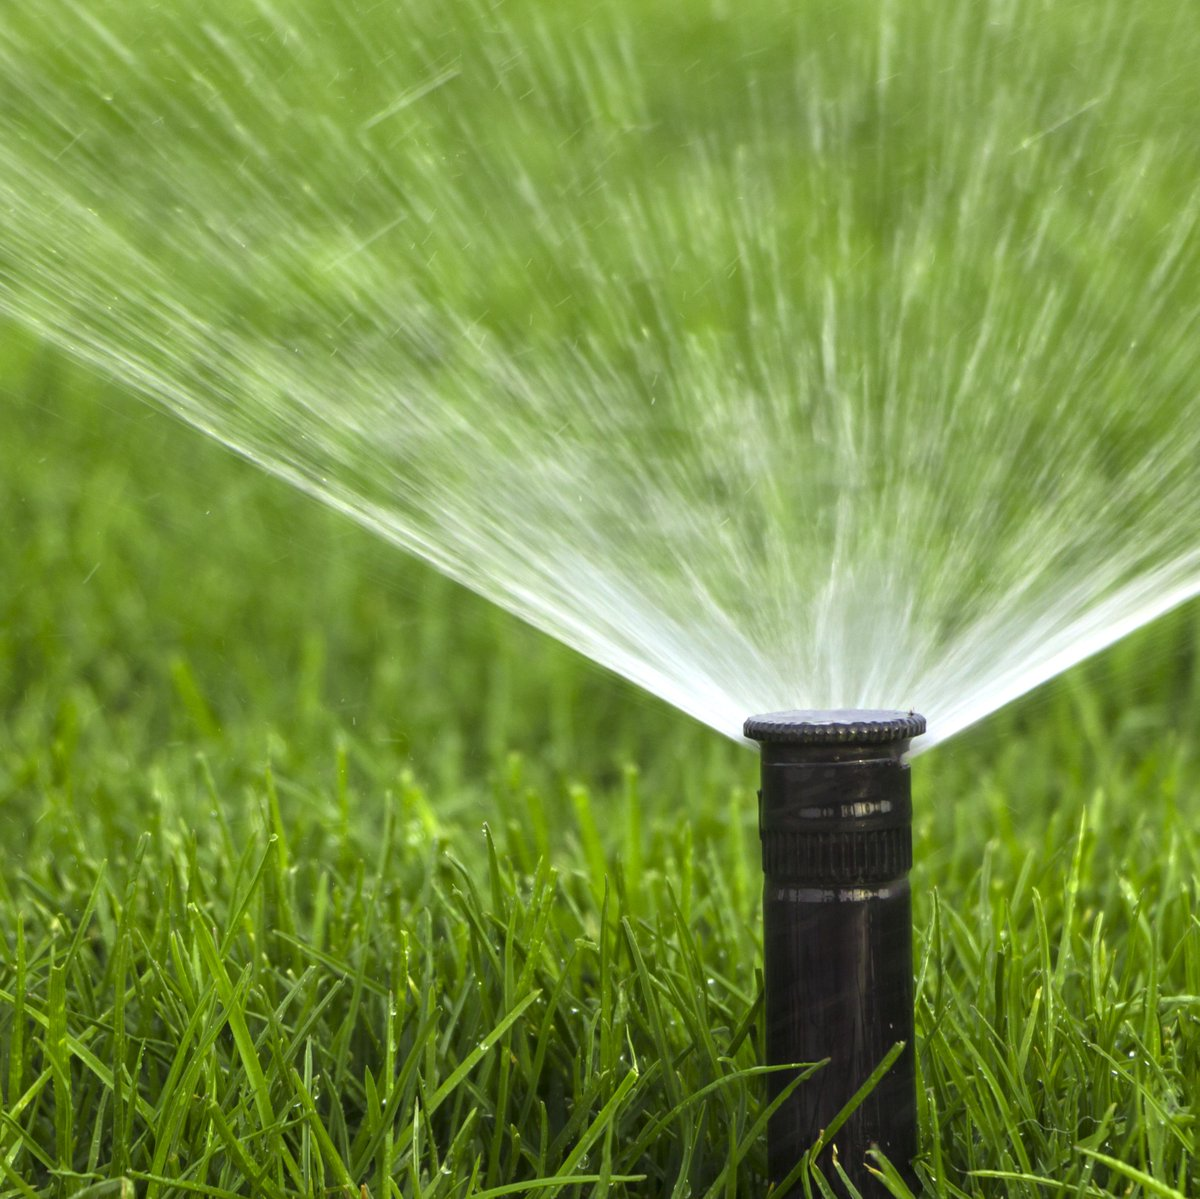 Does your sprinkler system need basic repairs? Ontario residents can receive assistance with sprinkler repairs at no cost.  Visit  for more information on what the program covers and contact OMUC at 909 395-2614 or email waterwise@ontarioca.gov to sign up.